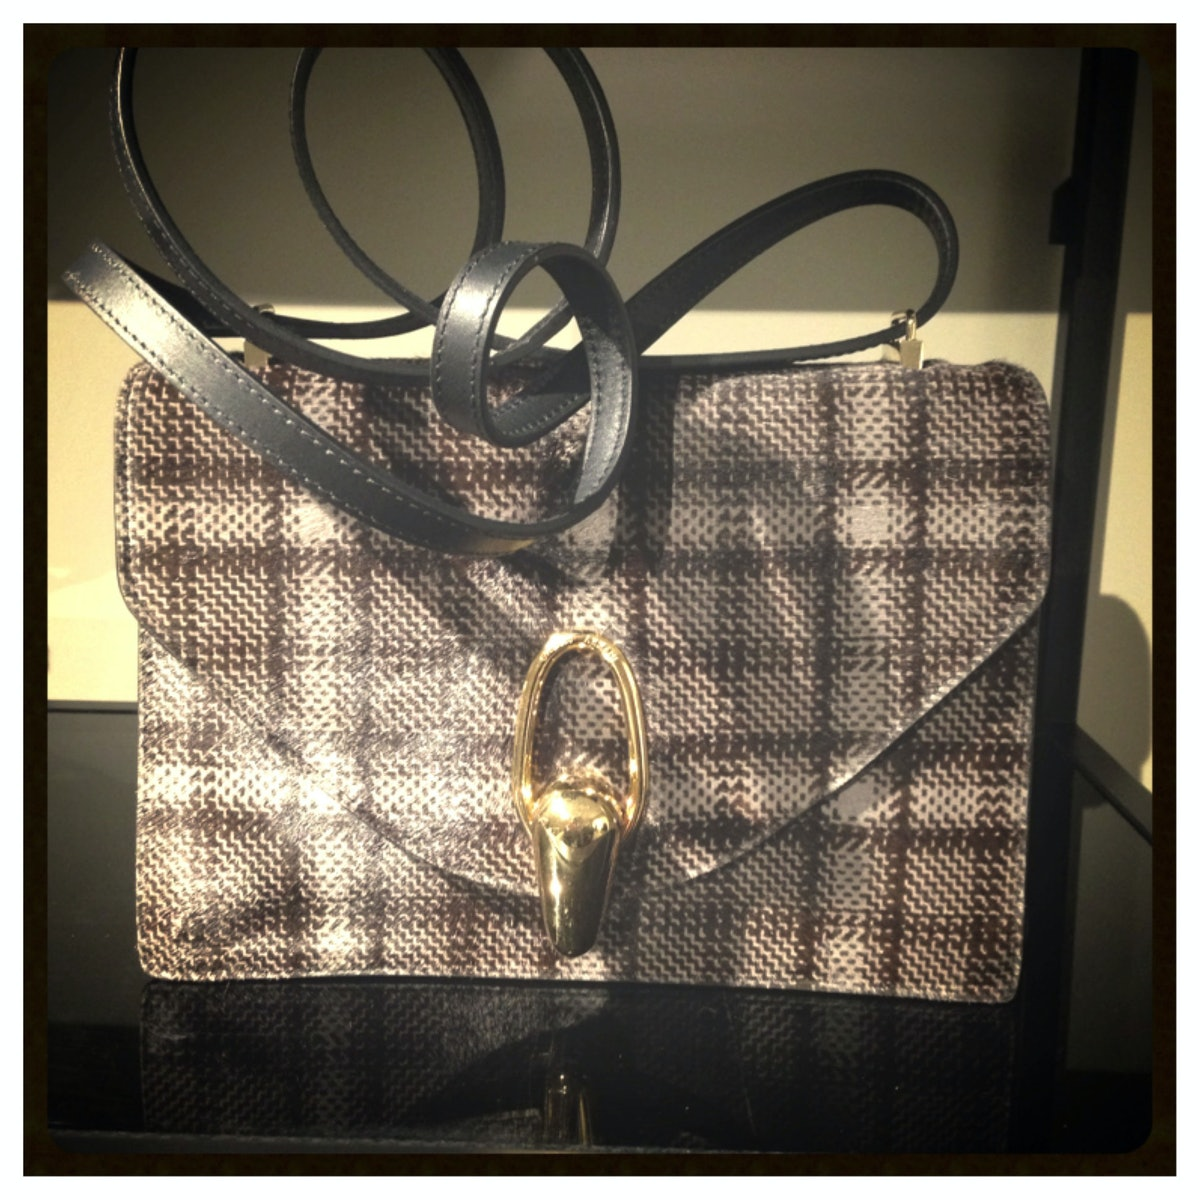 We have our eye on this glen plaid pony hair bag from [Giorgio Armani](http://www.wmagazine.com/mood...